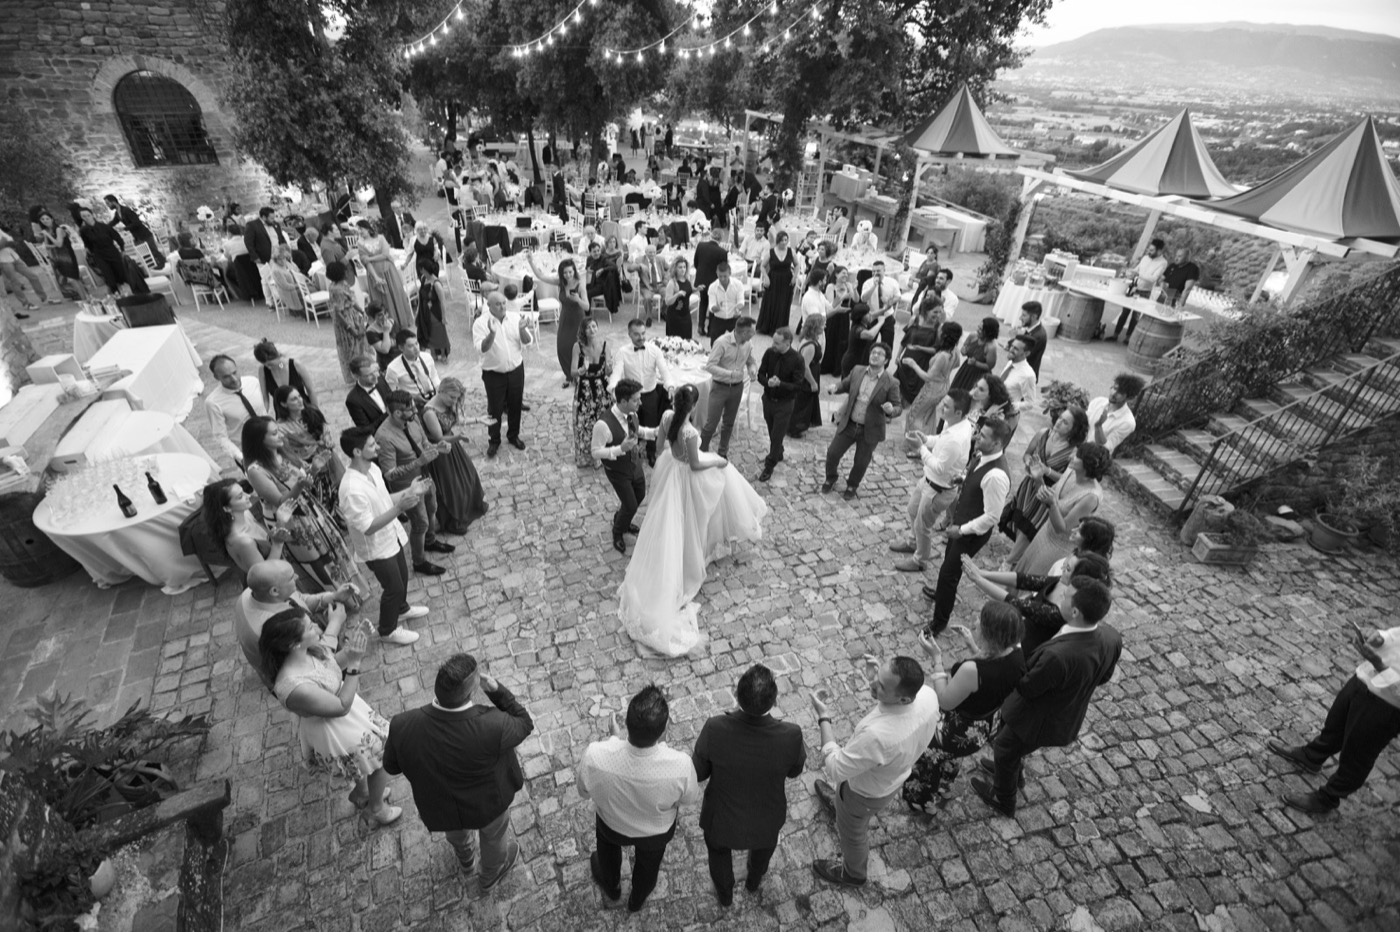 Claudio-Coppola-wedding-photographer-castello-rosciano-torgiano-59